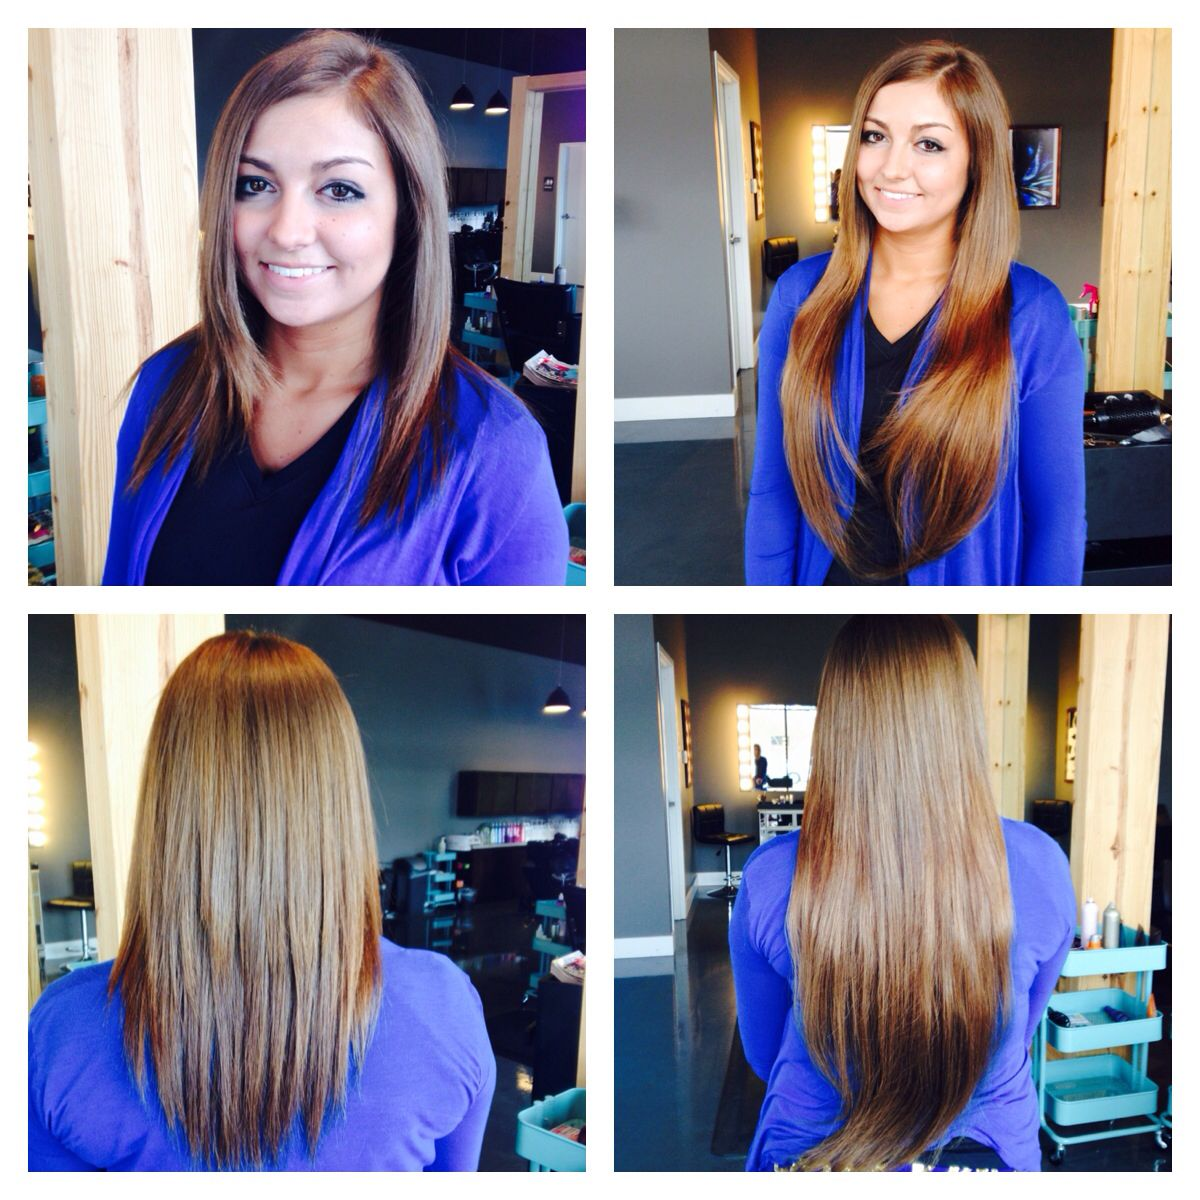 Dream Catchers Hair Extensions By Erin Carolan At Chasing Vanity